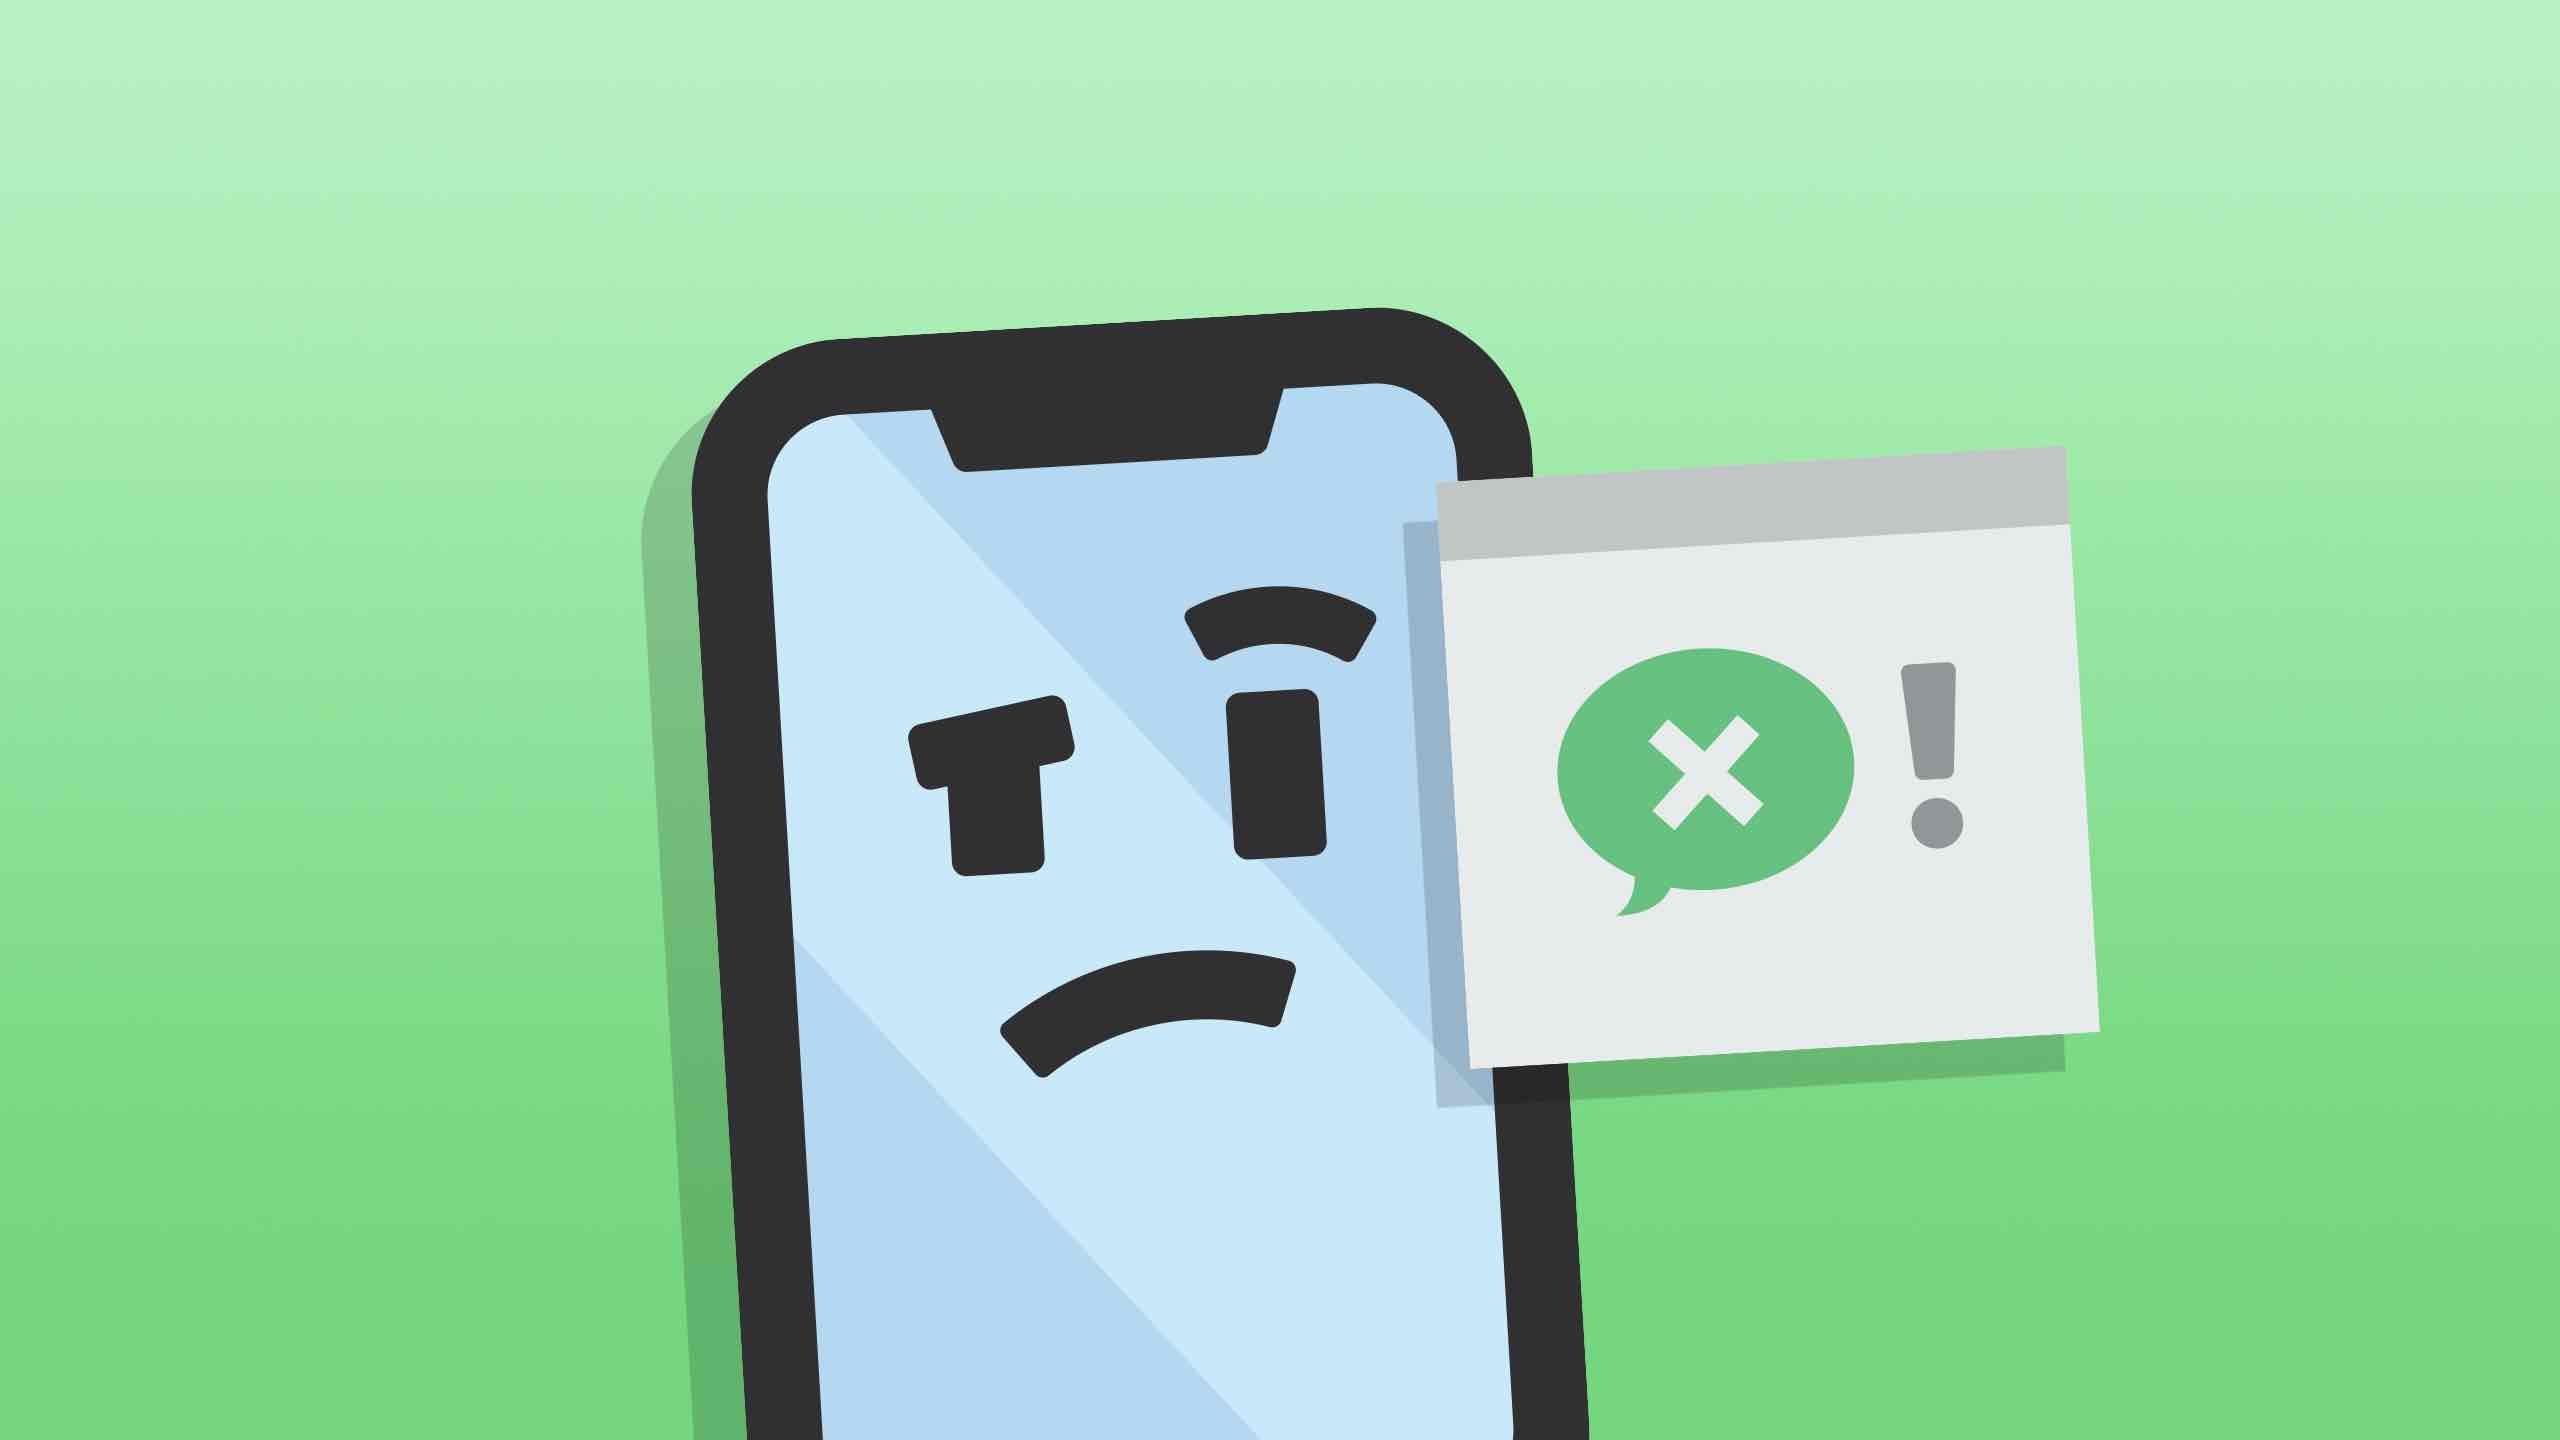 How To Fix iMessage Signed Out Error On iPhone